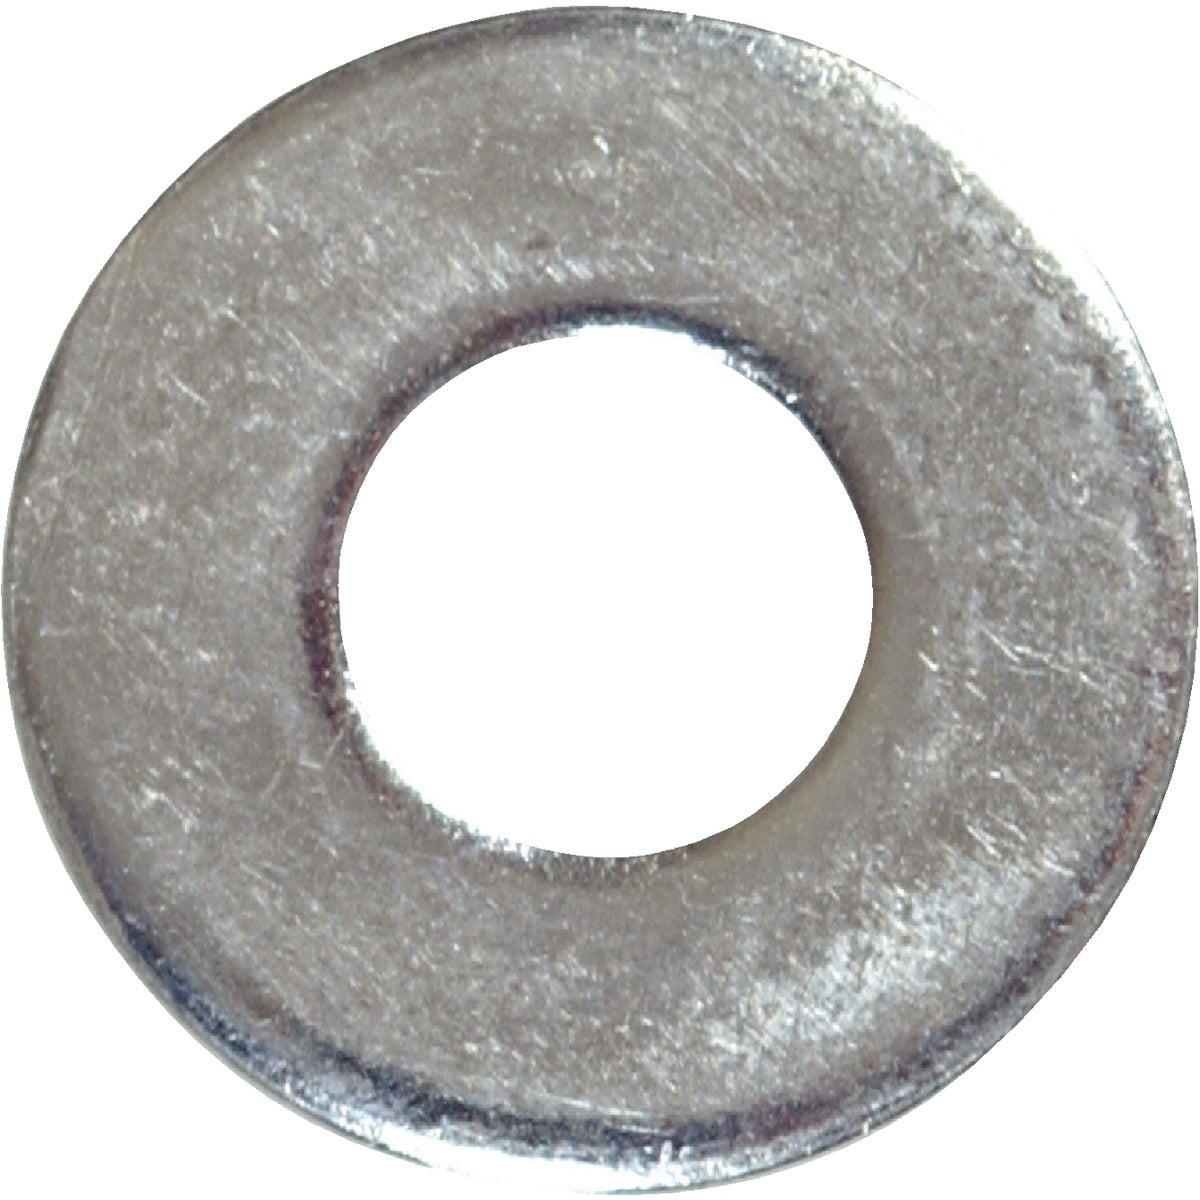 "5LB 3/16"" USS FLT WASHER - 270003 by Hillman Fastener"